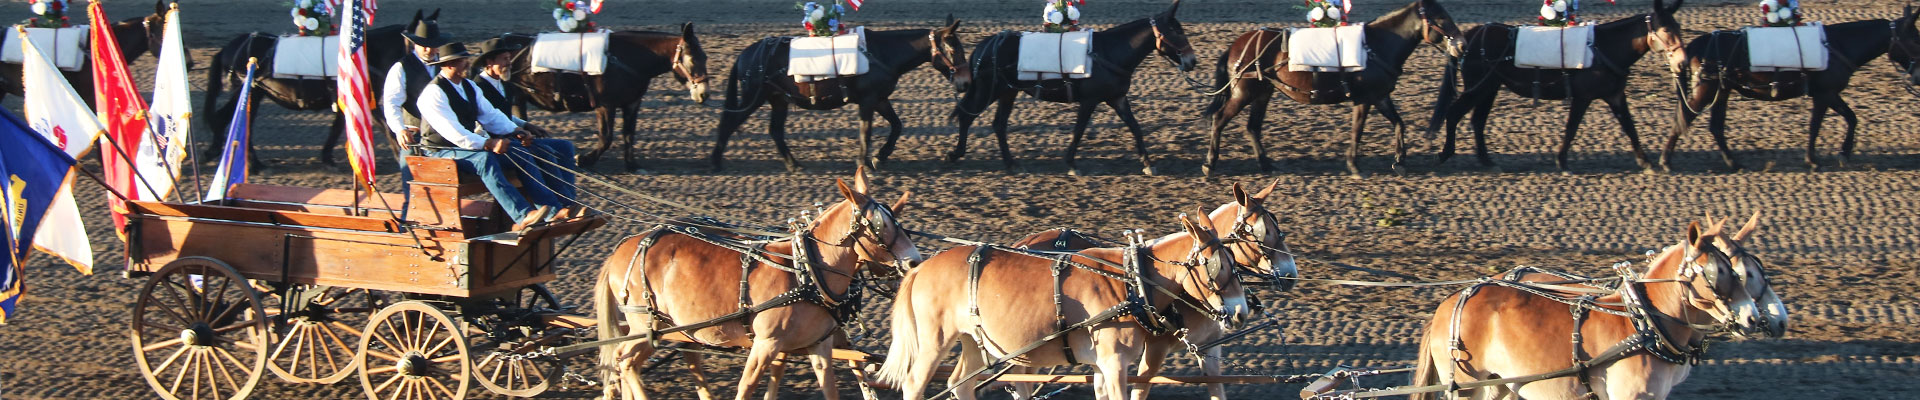 Fantasy RV Tours: 6 Day Mule Days Rally (06UMDF-052020)